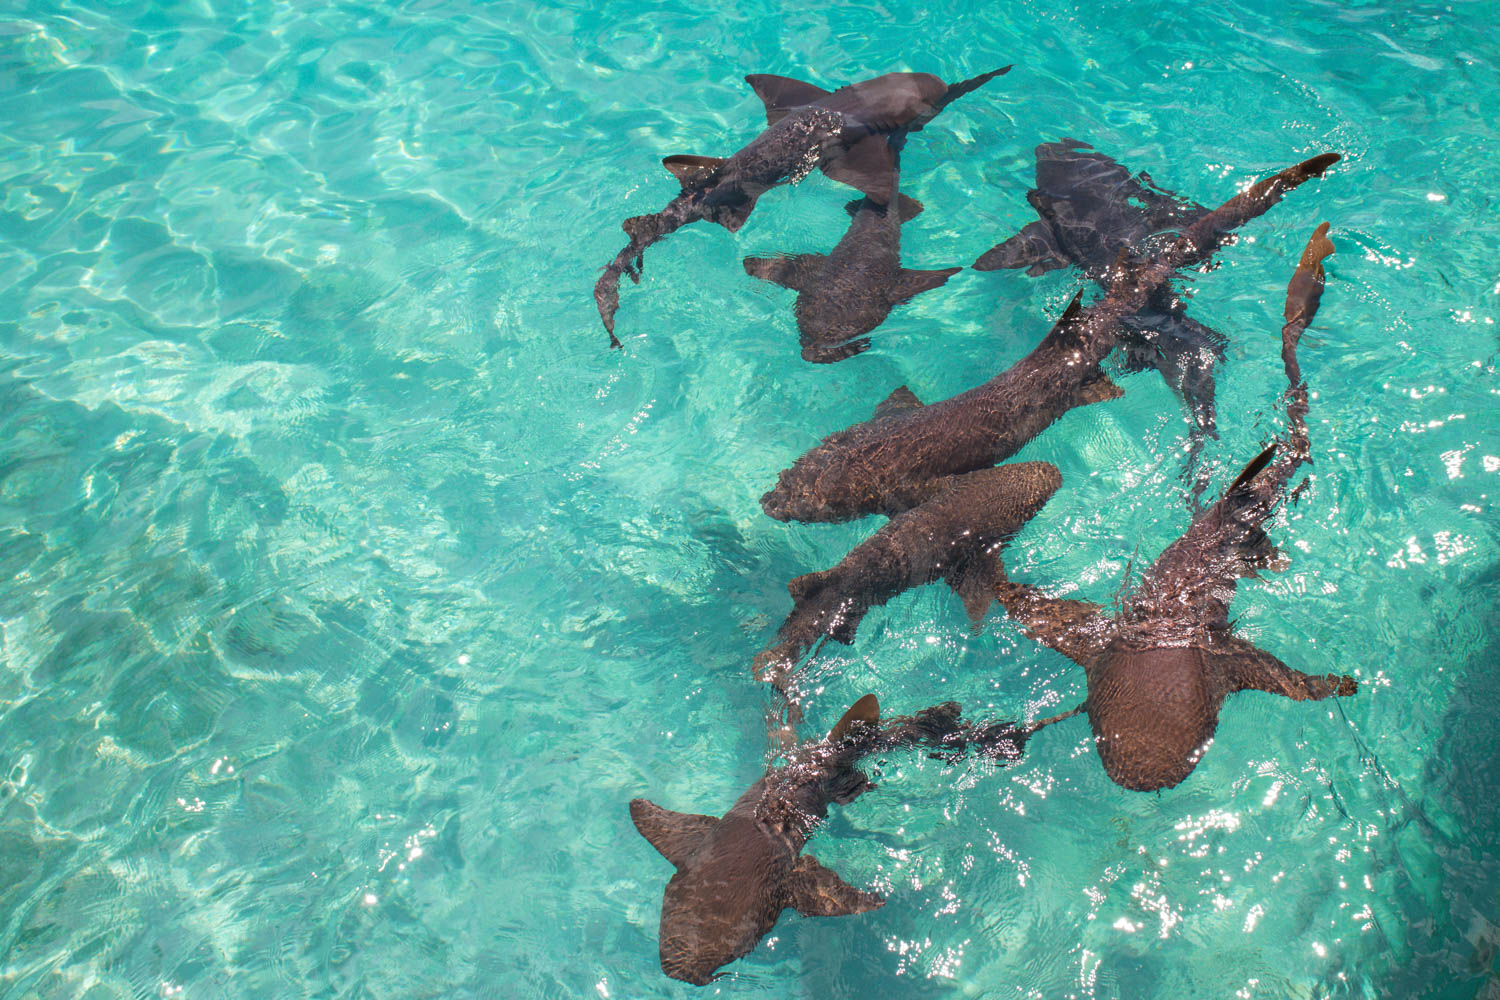 The Compass Cay sharks catch eyes on day trips from Nassau to Exuma. They are the best excursions in Bahamas.